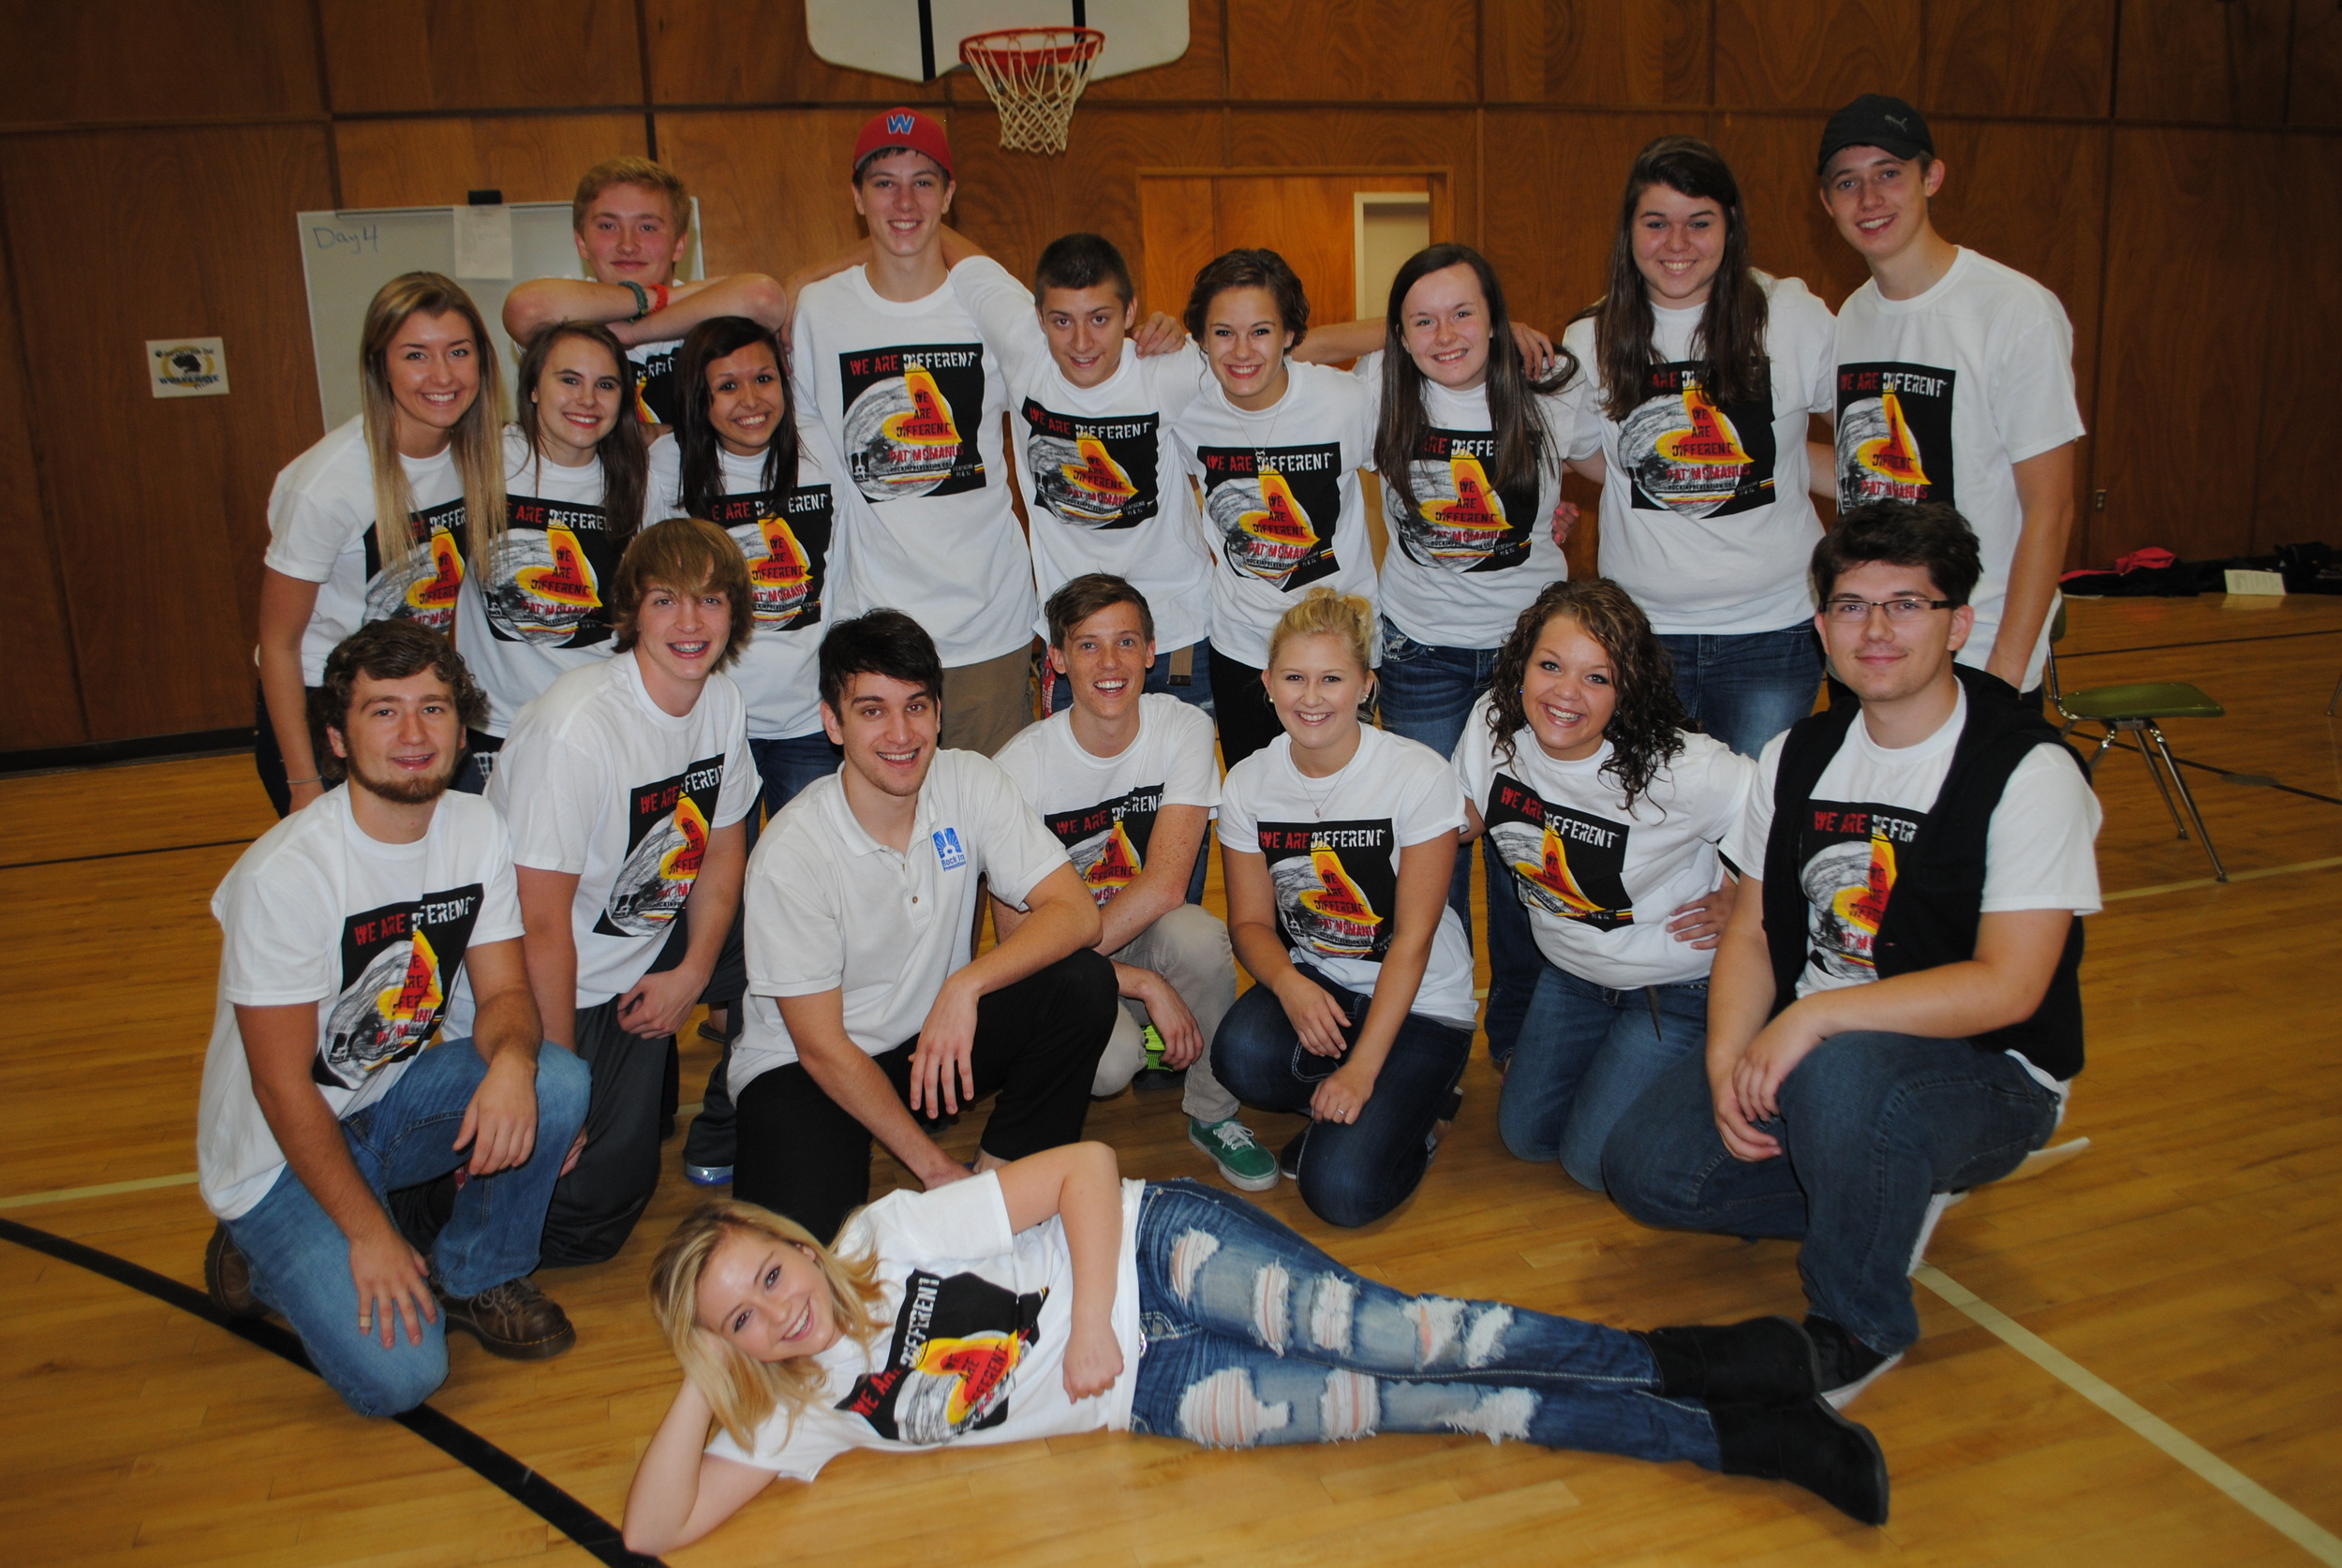 WDC High School mentors did a fantastic job helping Rock In Prevention deliver their anti-bullying message. Back row, from left: Carrie Nelson, Kassi Peterson, Wade Piper, Athea Perez, Wyatt Fitzsimmons, Toby Wood, Autumn Jahnke, Rylie Langer, Jessica Wood, Ian Olson; kneeling, from left: Dylan Phillips, Jarrett Pettit, John Correa and Andrew Droogsma, Rock In Prevention presenters; Kristyn Ament, Katy Wegscheid and David Wegscheid.